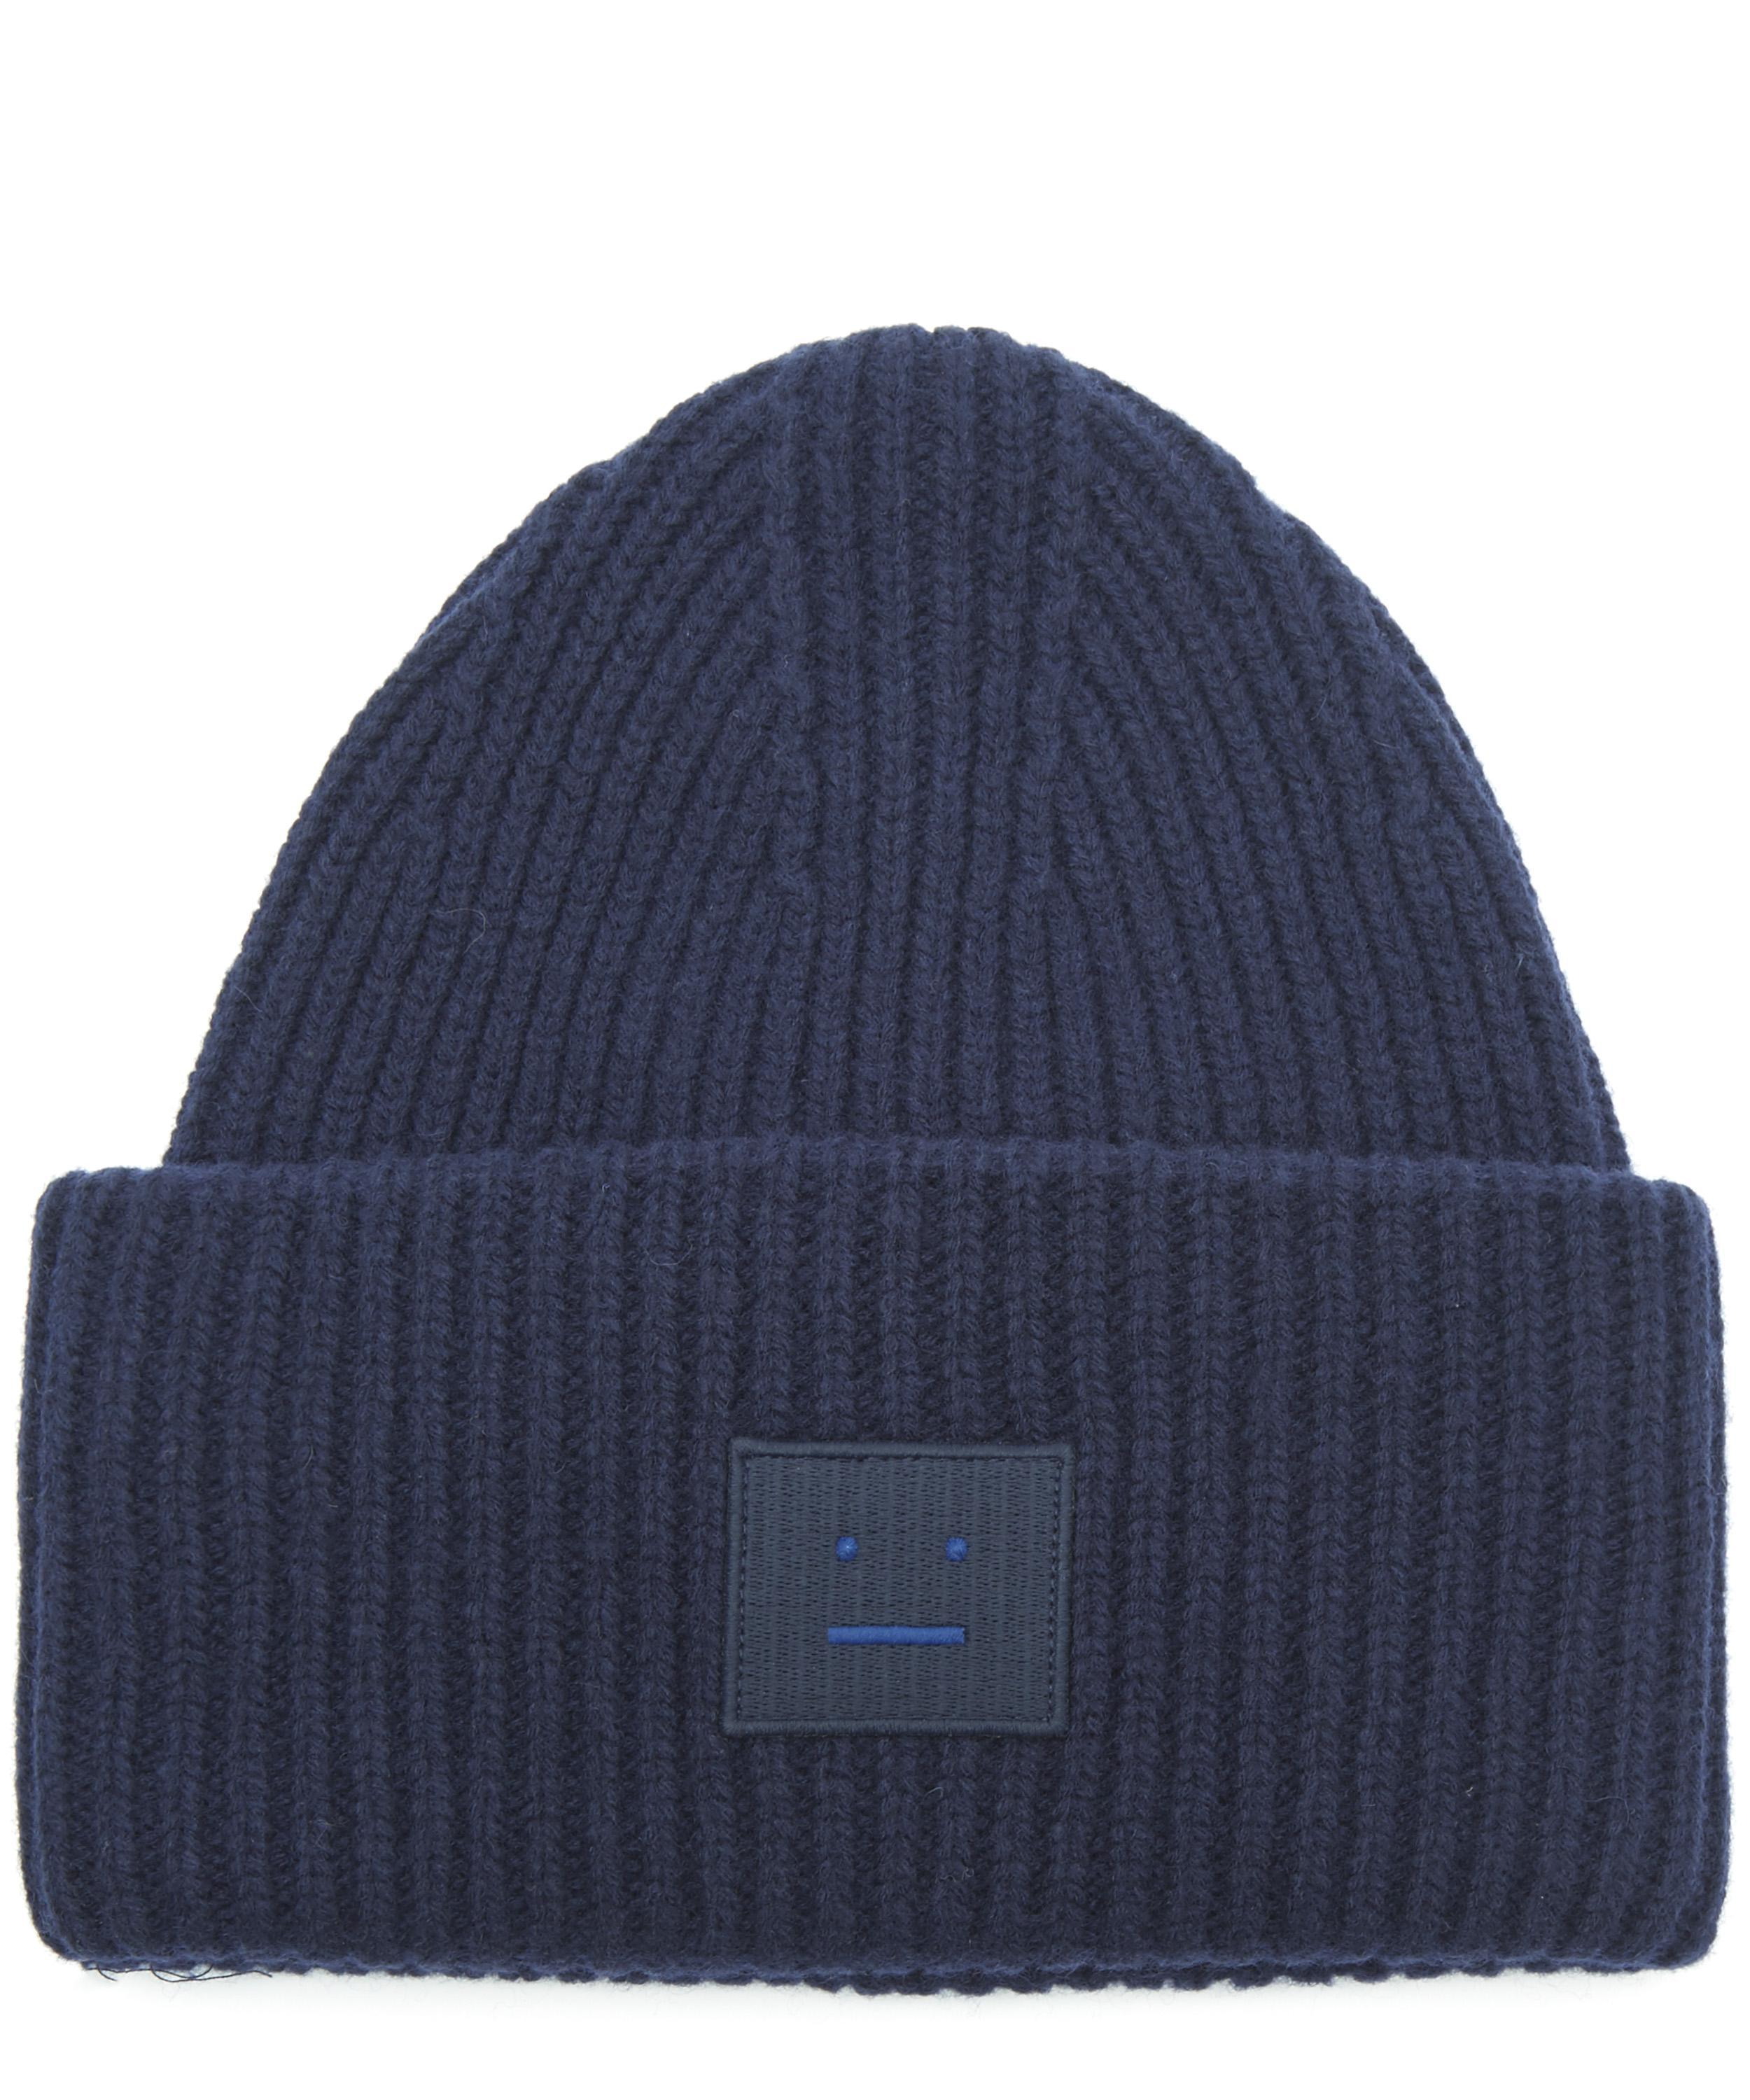 b31ad55ddee Lyst - Acne Studios Pansy Face Wool Beanie Hat in Blue for Men